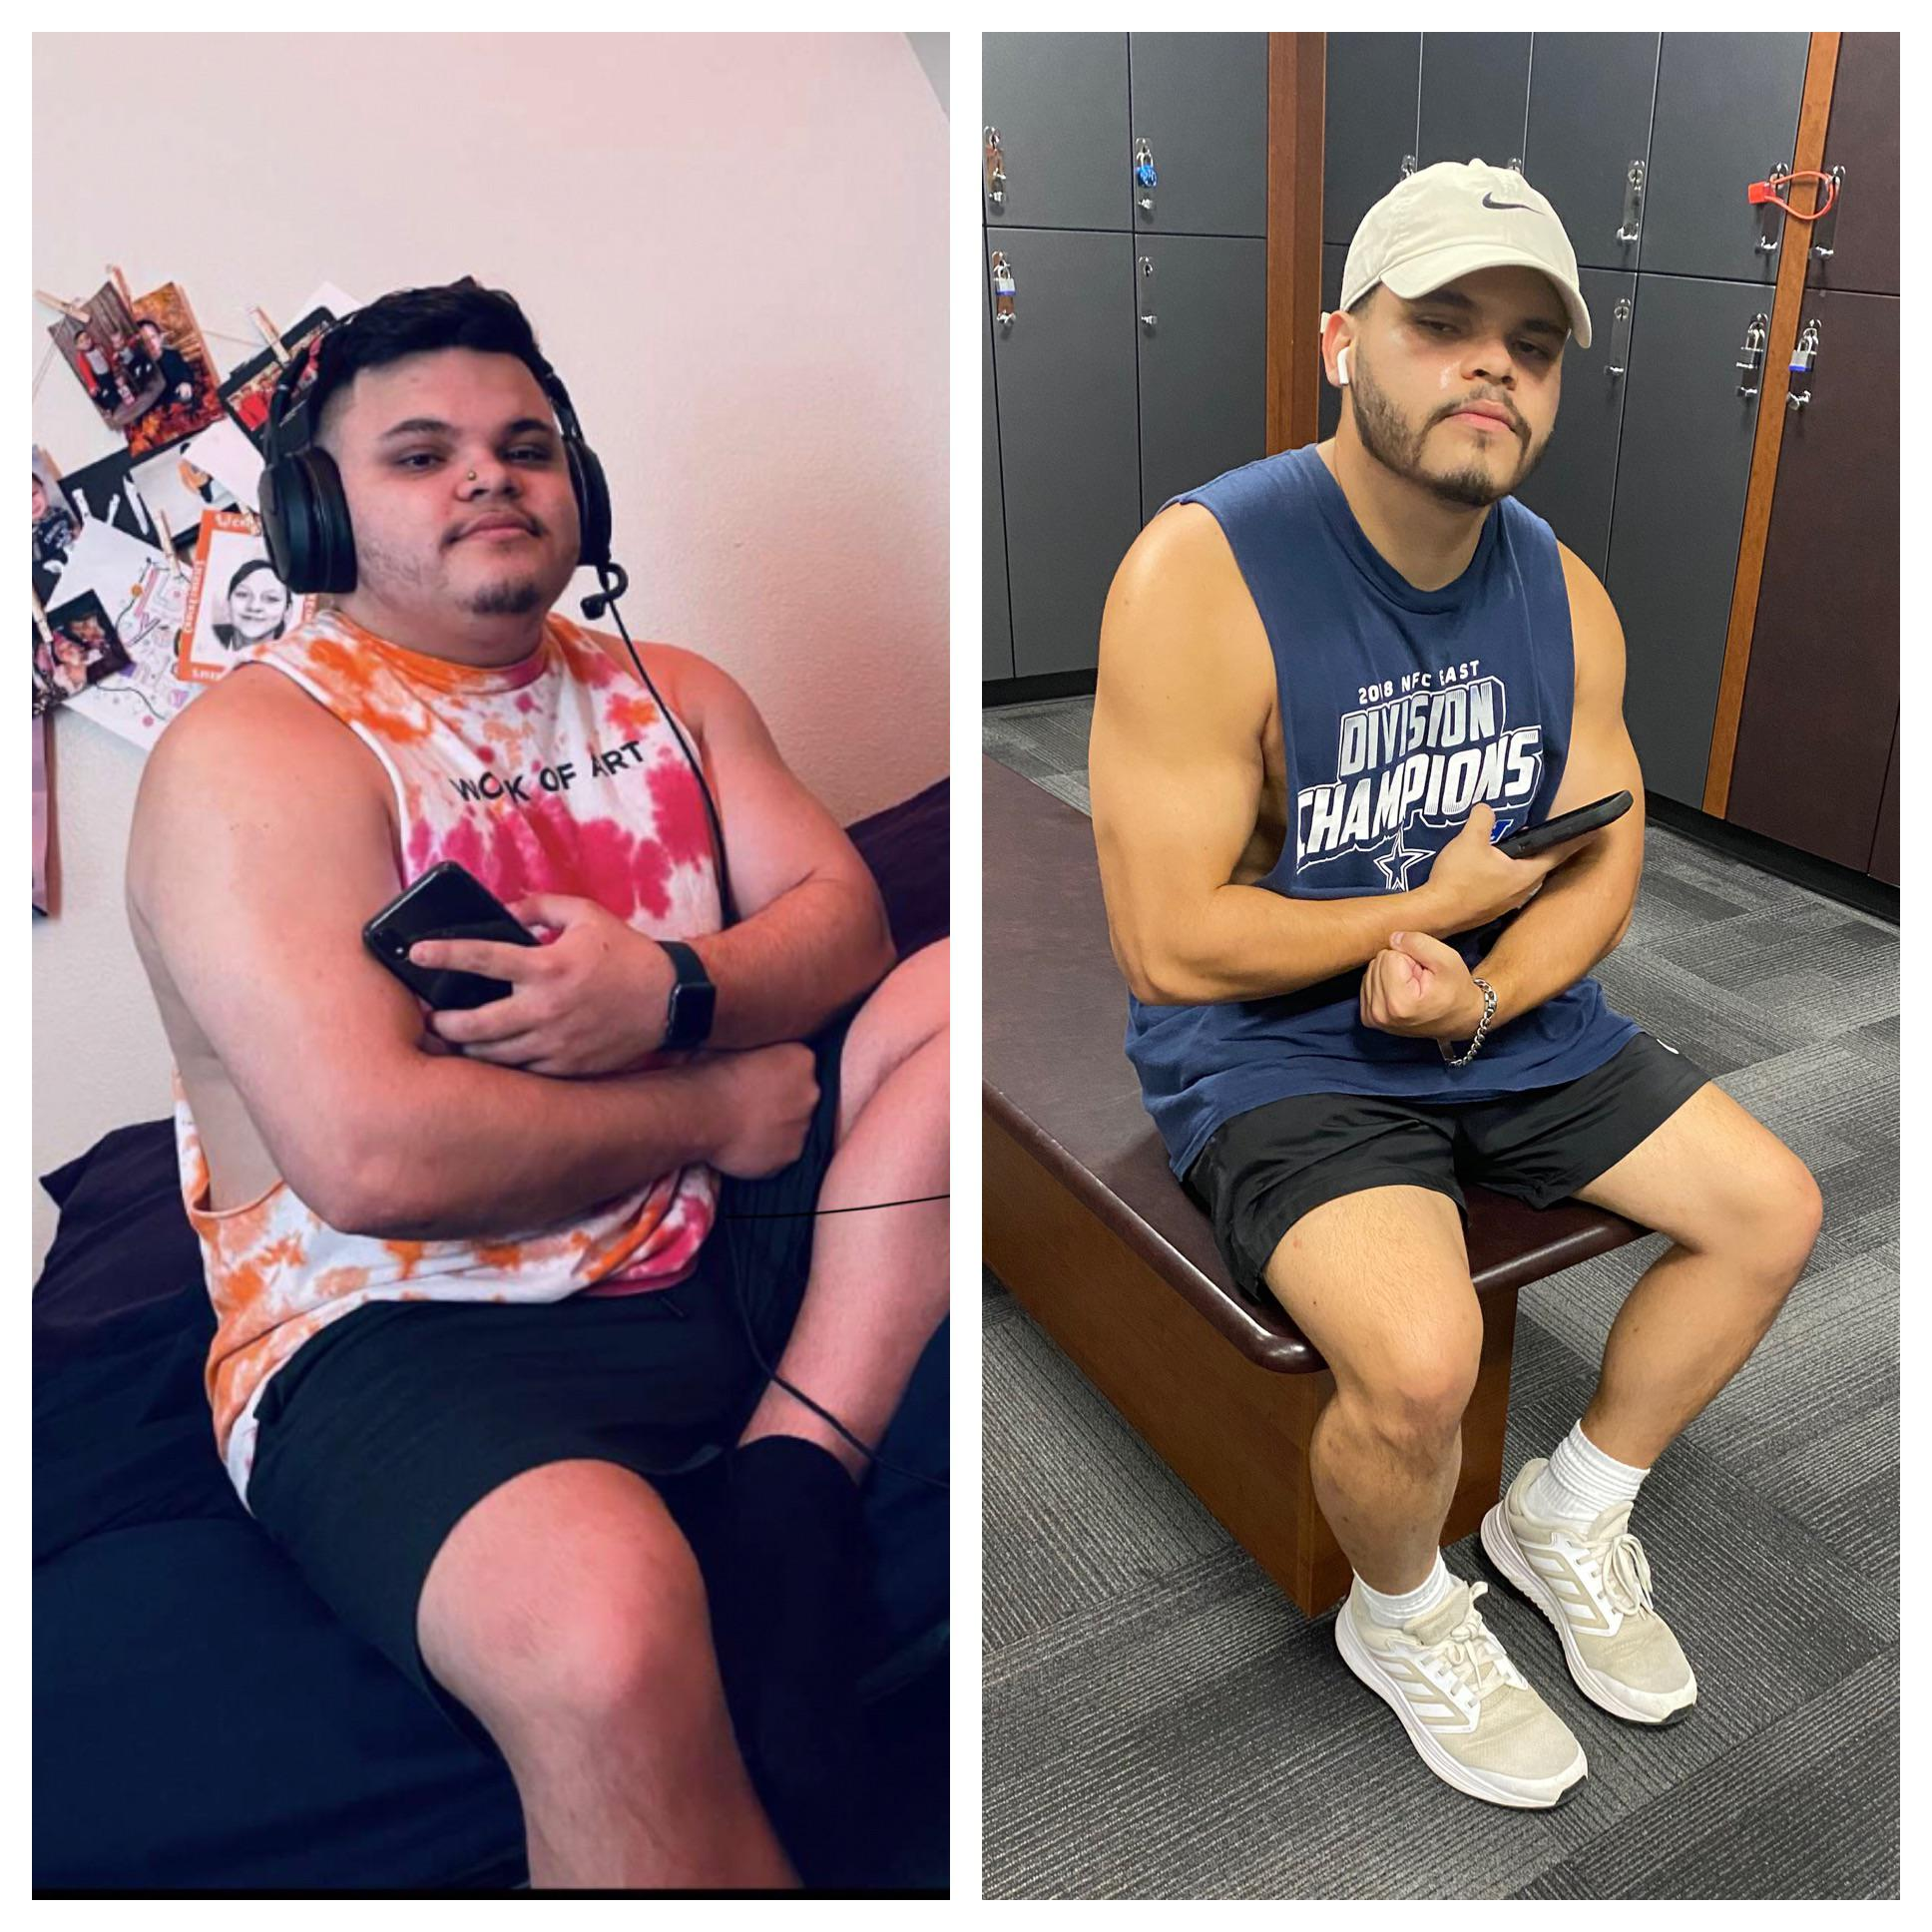 5 foot 7 Male 45 lbs Weight Loss Before and After 230 lbs to 185 lbs